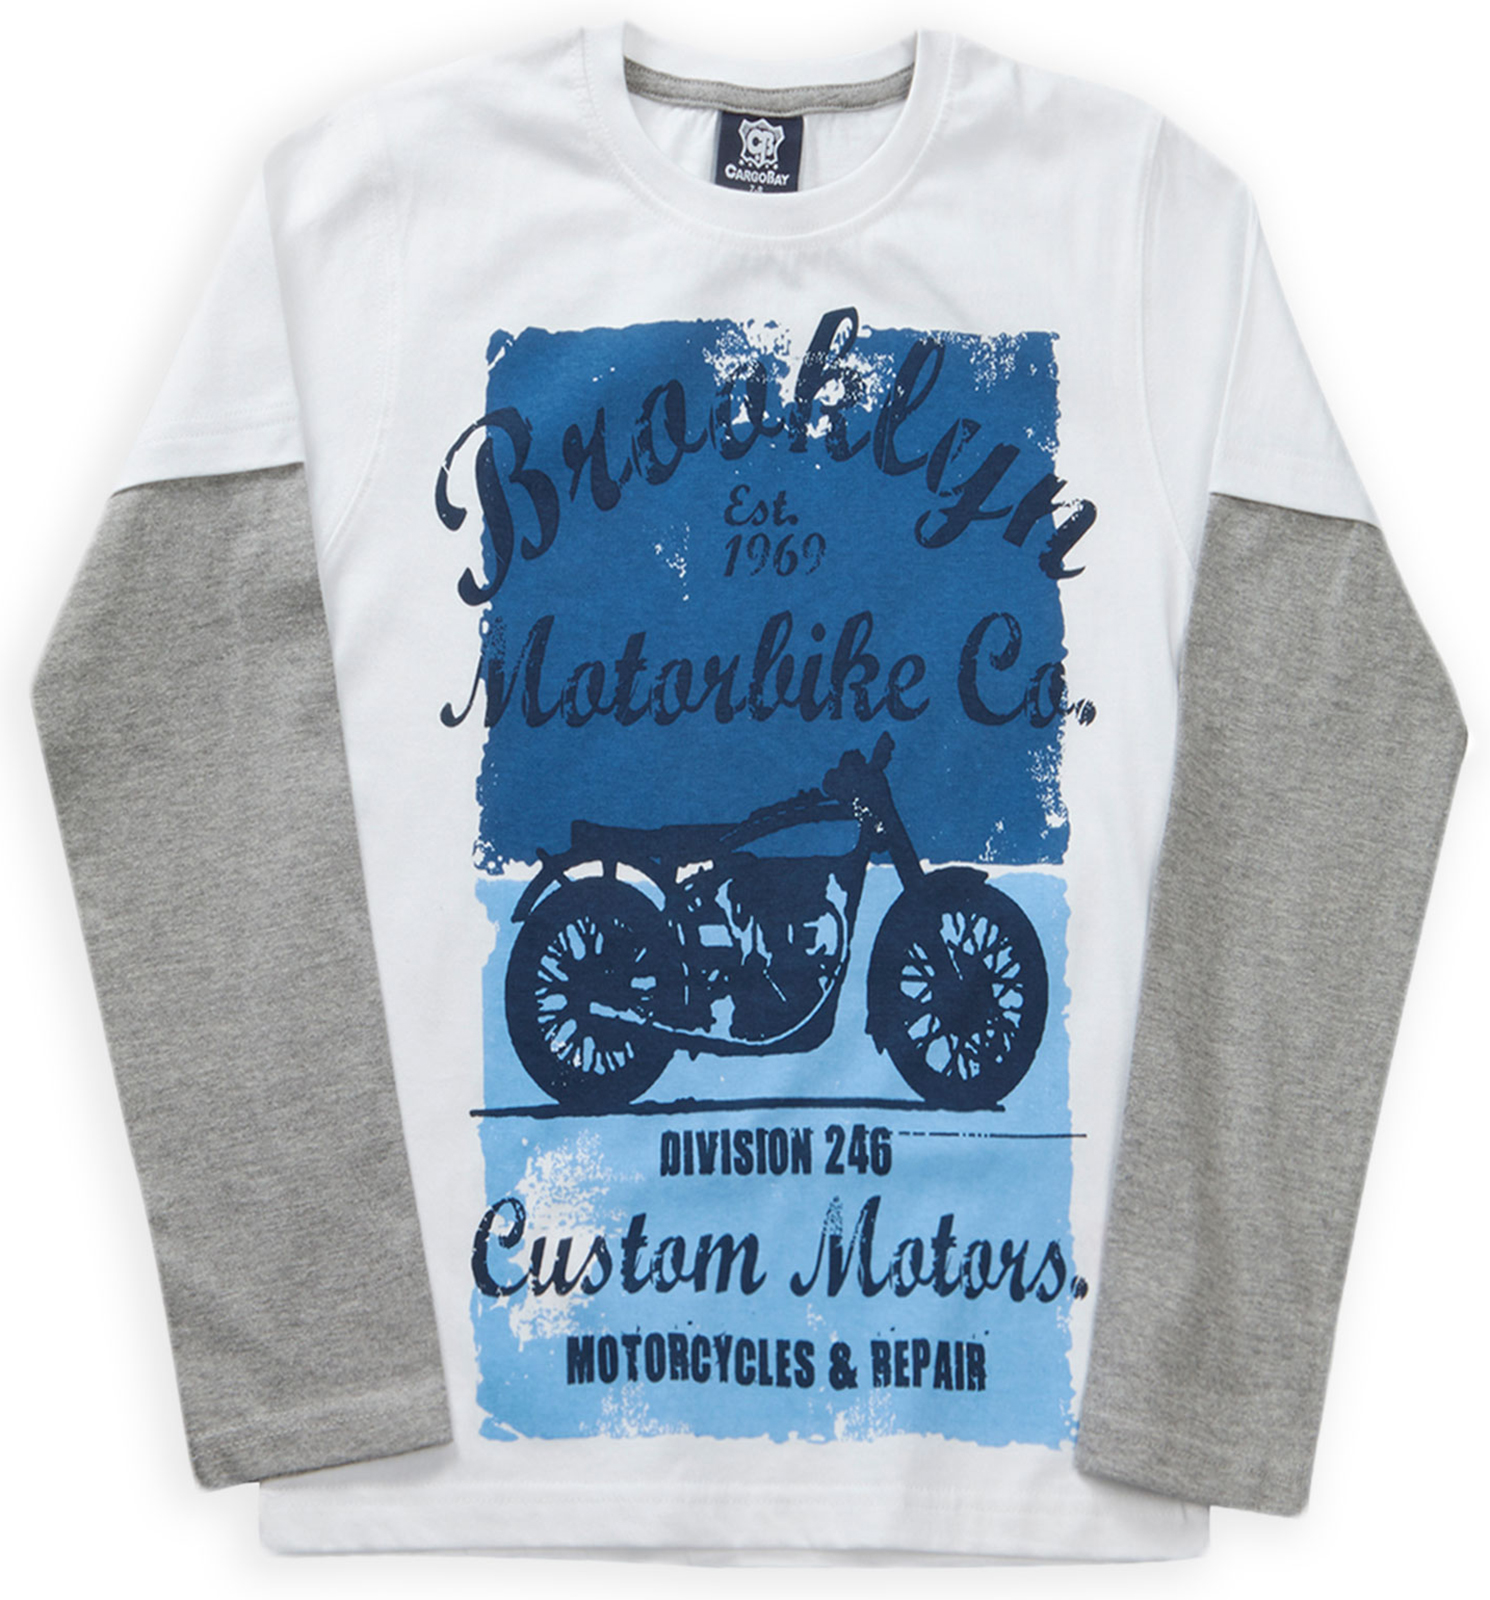 Boys-T-Shirt-New-Kids-Long-Sleeved-Overlay-Cotton-Slogan-Top-Age-2-3-4-5-6-Years